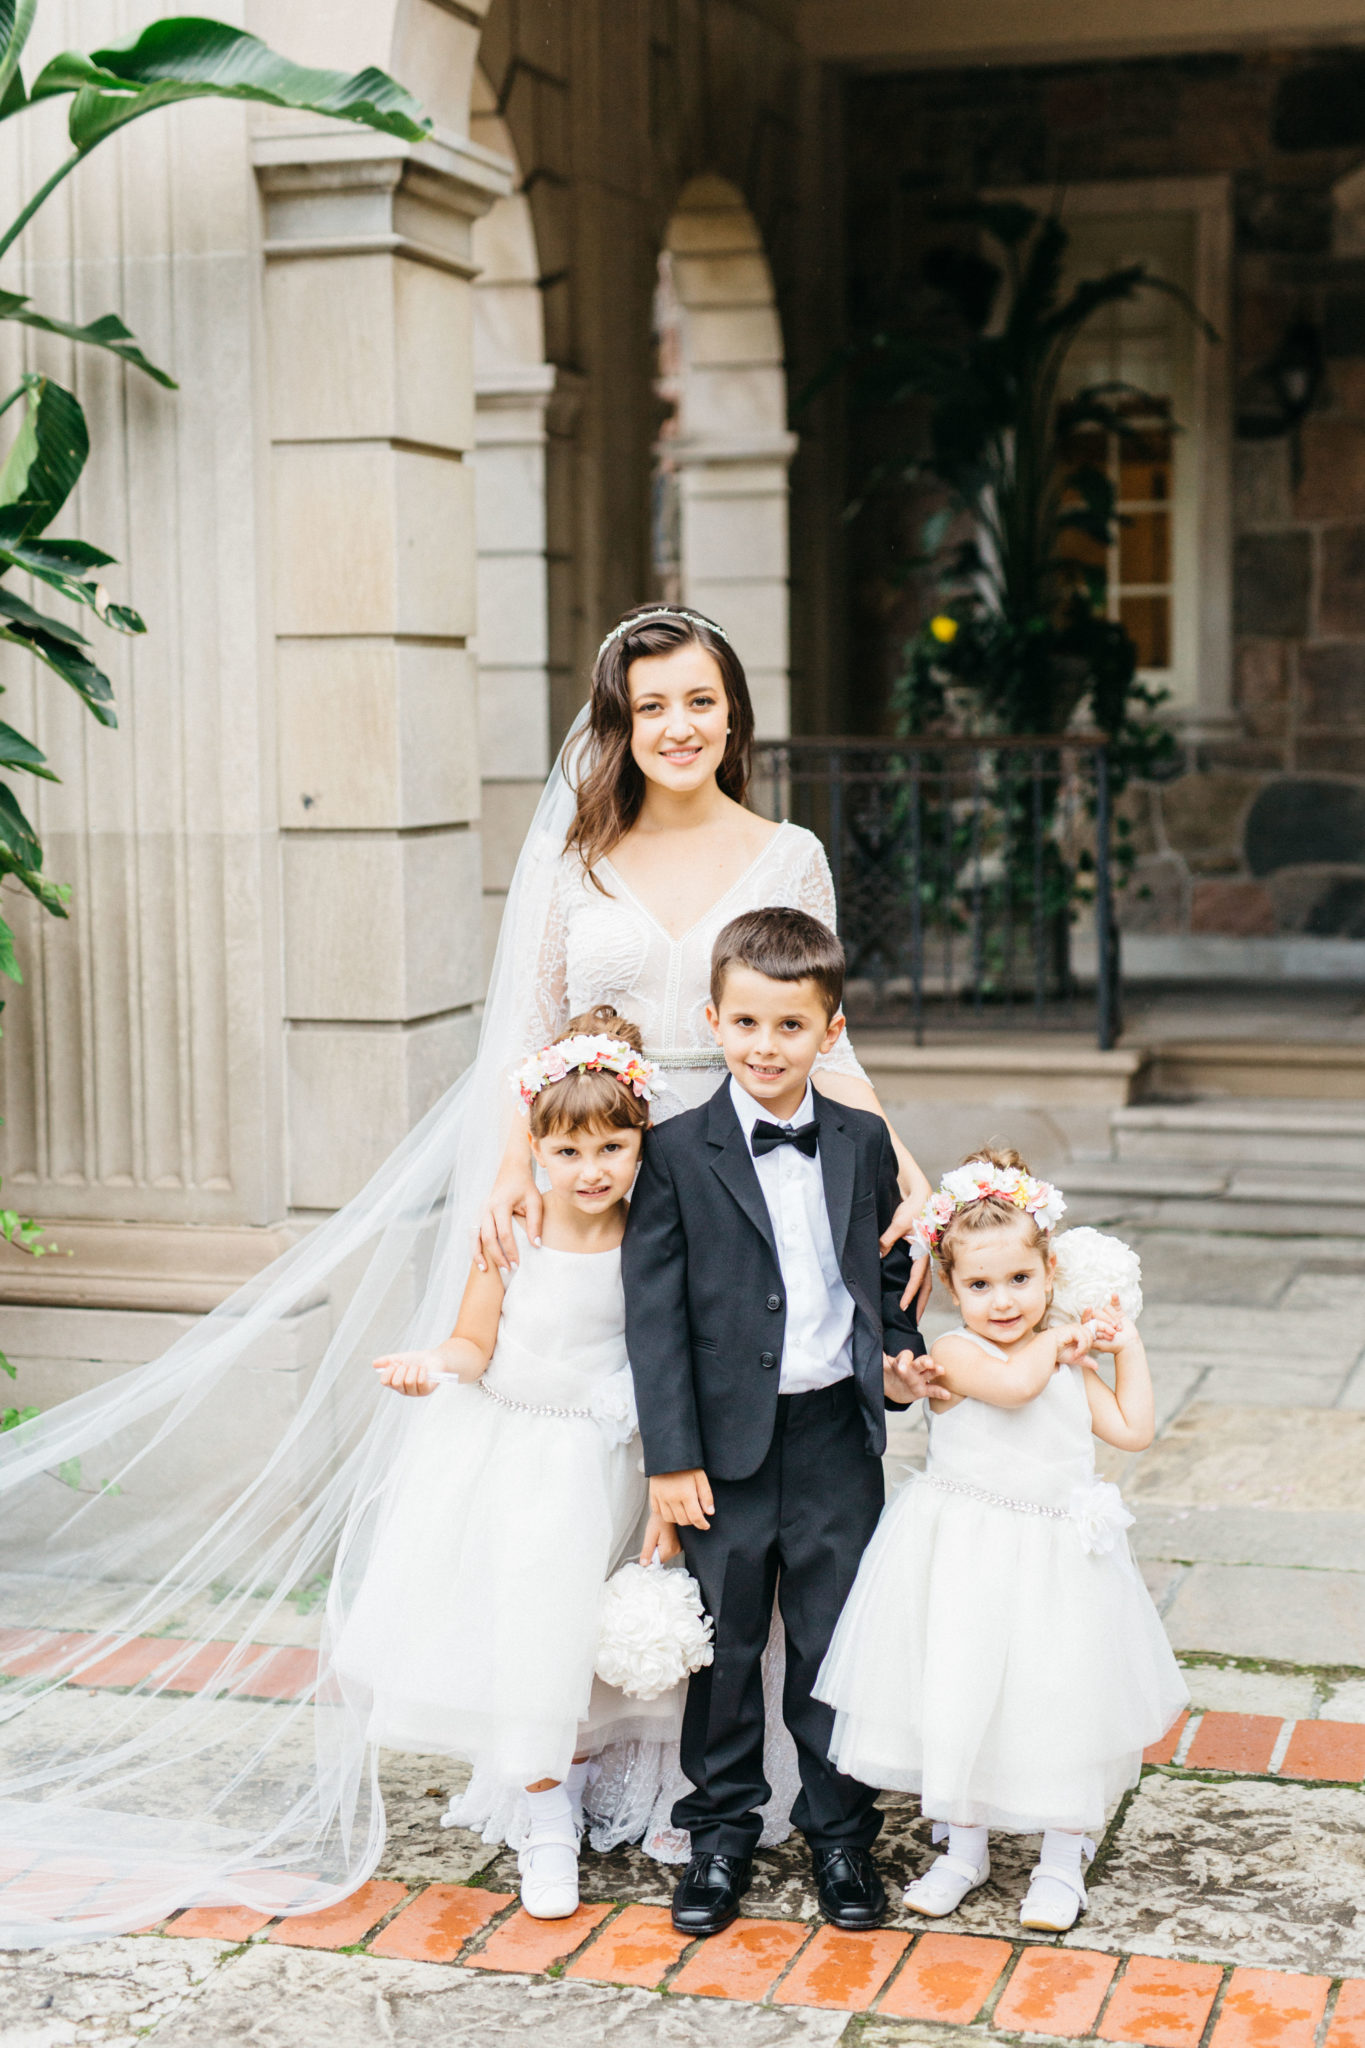 Bride with flower girls and ring boy at Bride and groom at Graydon Hall Manor